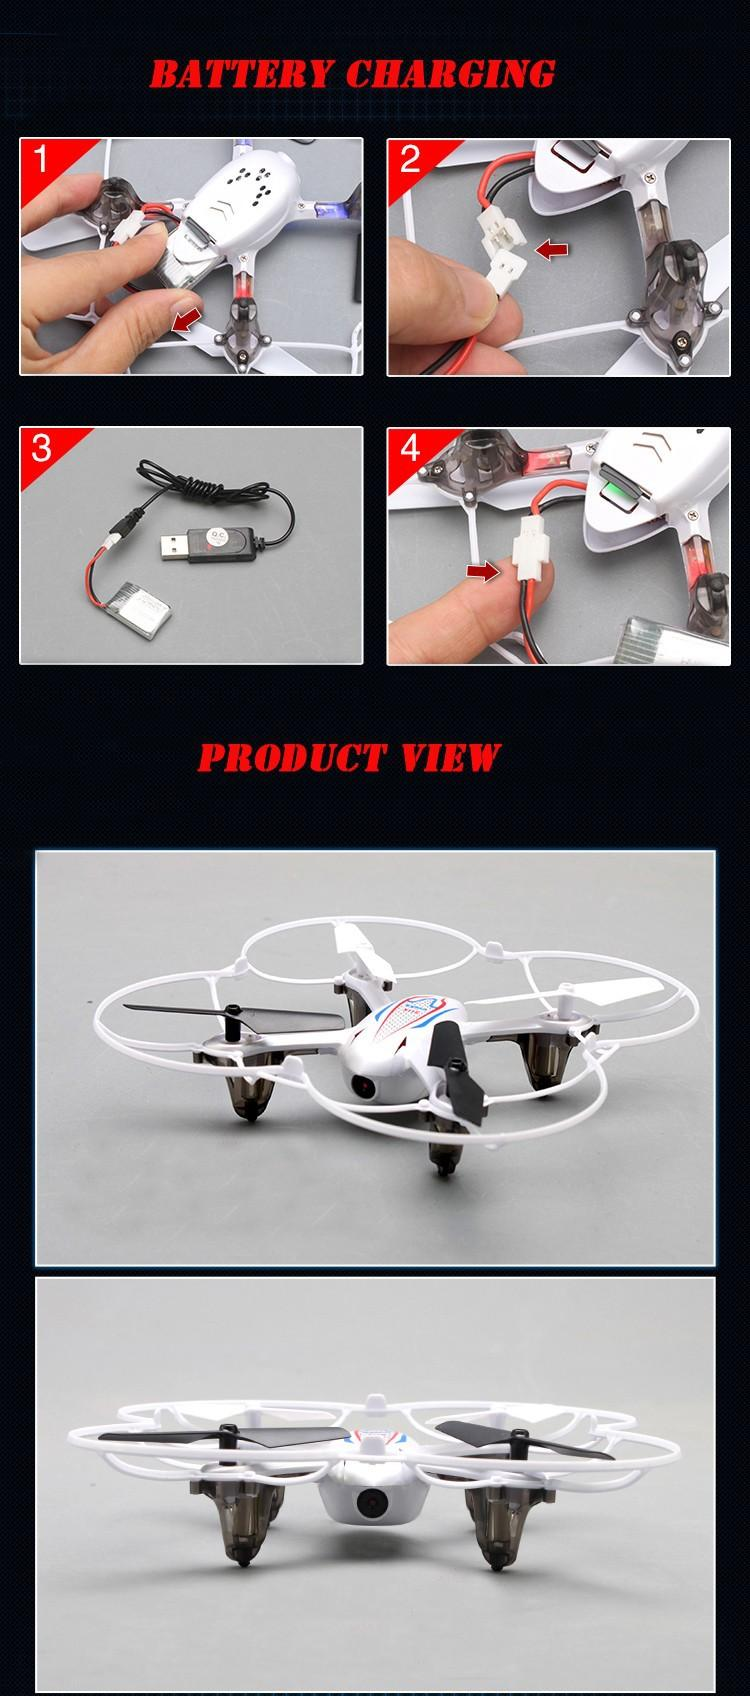 Syma X11C 2.4G 6 Axis Camera Hd Gyro Rc Quadcopter Rtf Rc Com Câmera 2.0Mp + 4G Mini Cartão Sd